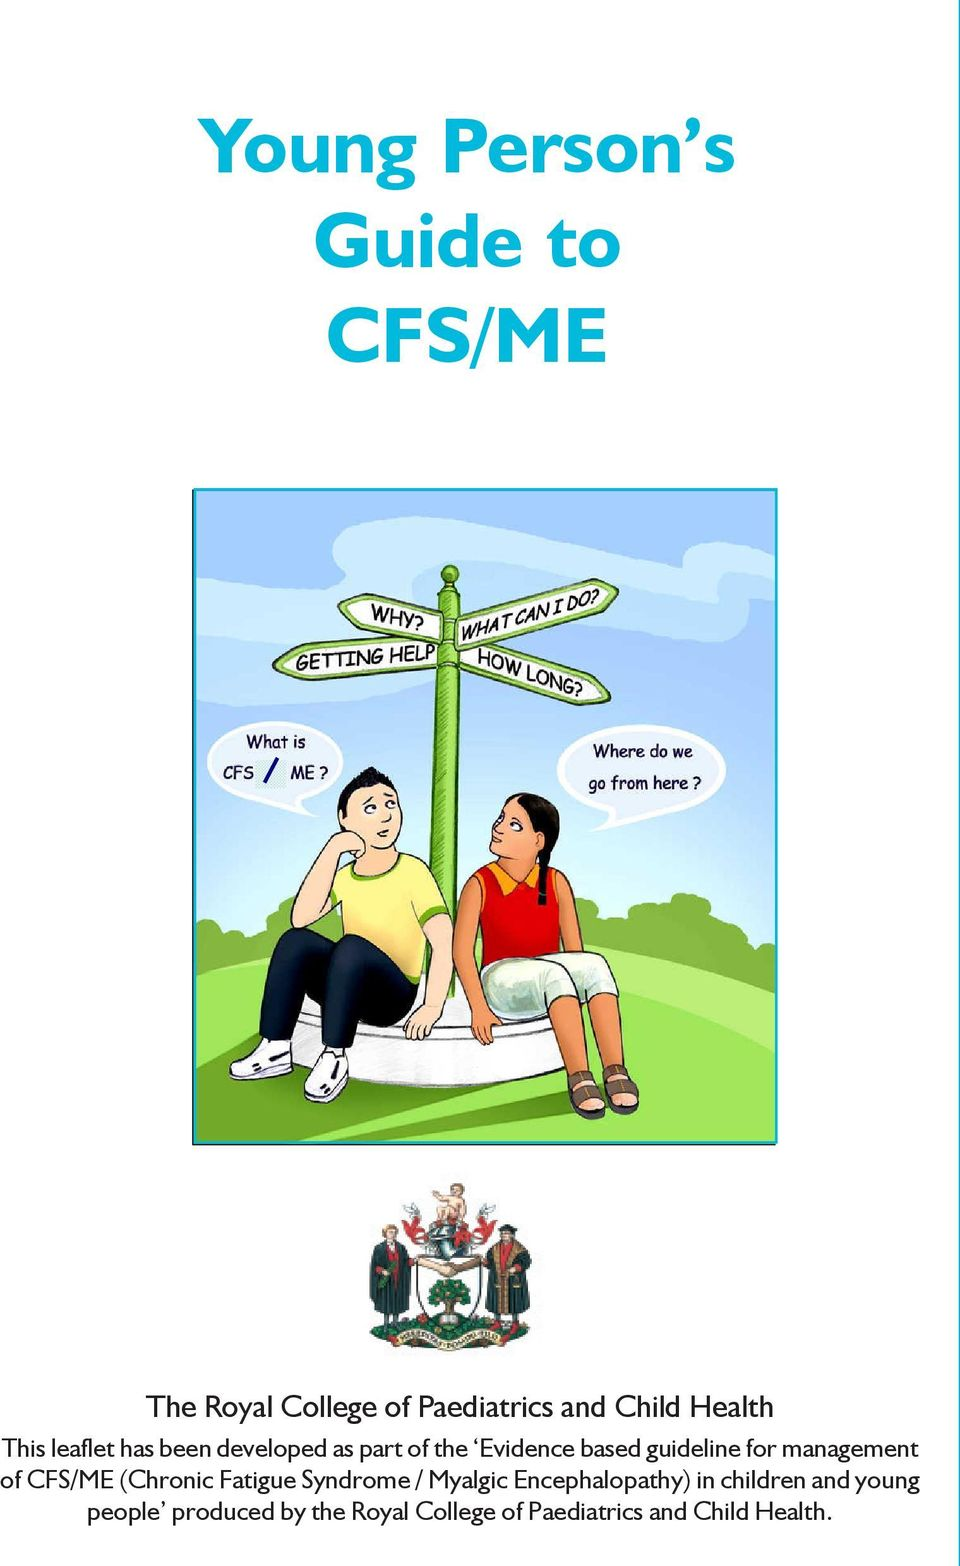 management of CFS/ME (Chronic Fatigue Syndrome / Myalgic Encephalopathy) in